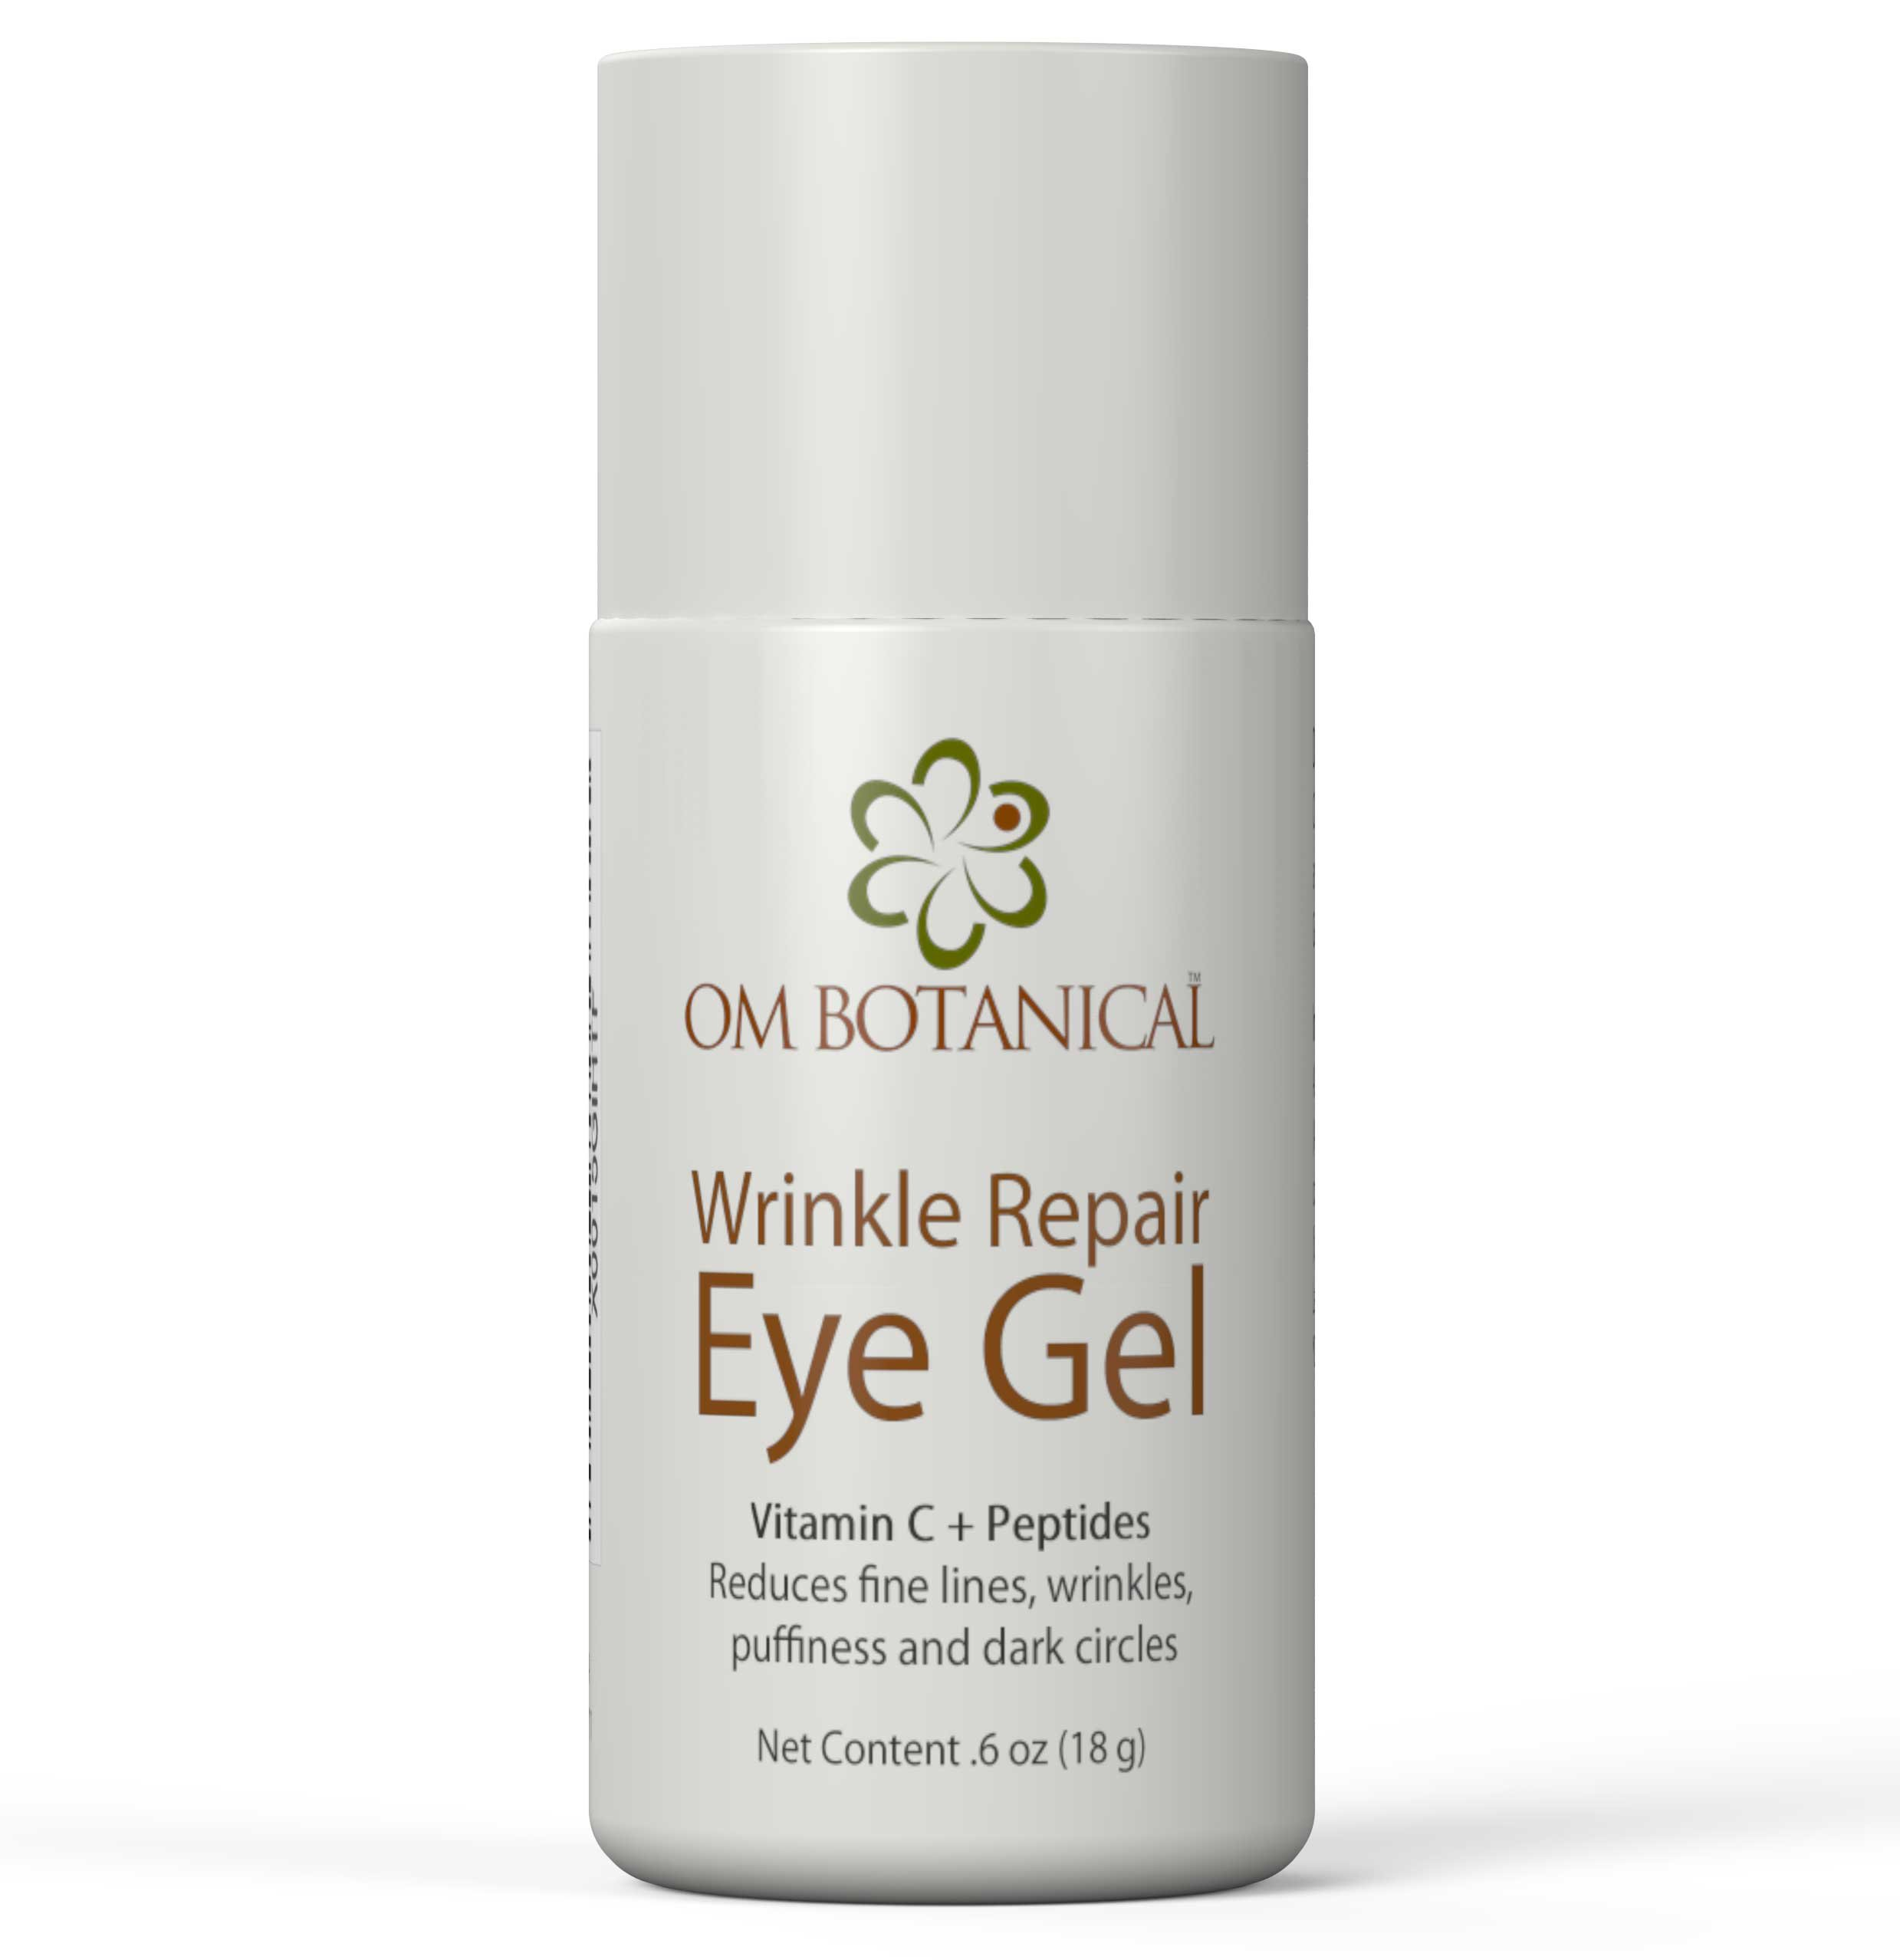 Eye Gel w/Peptides, Vitamin C, Cucumber For Wrinkles, Under Eye Bags and Dark Circles   Safest All Natural Under Eye Cream With Organic Argan Oil   Day & Night Anti-Aging Treatment For Men & Women